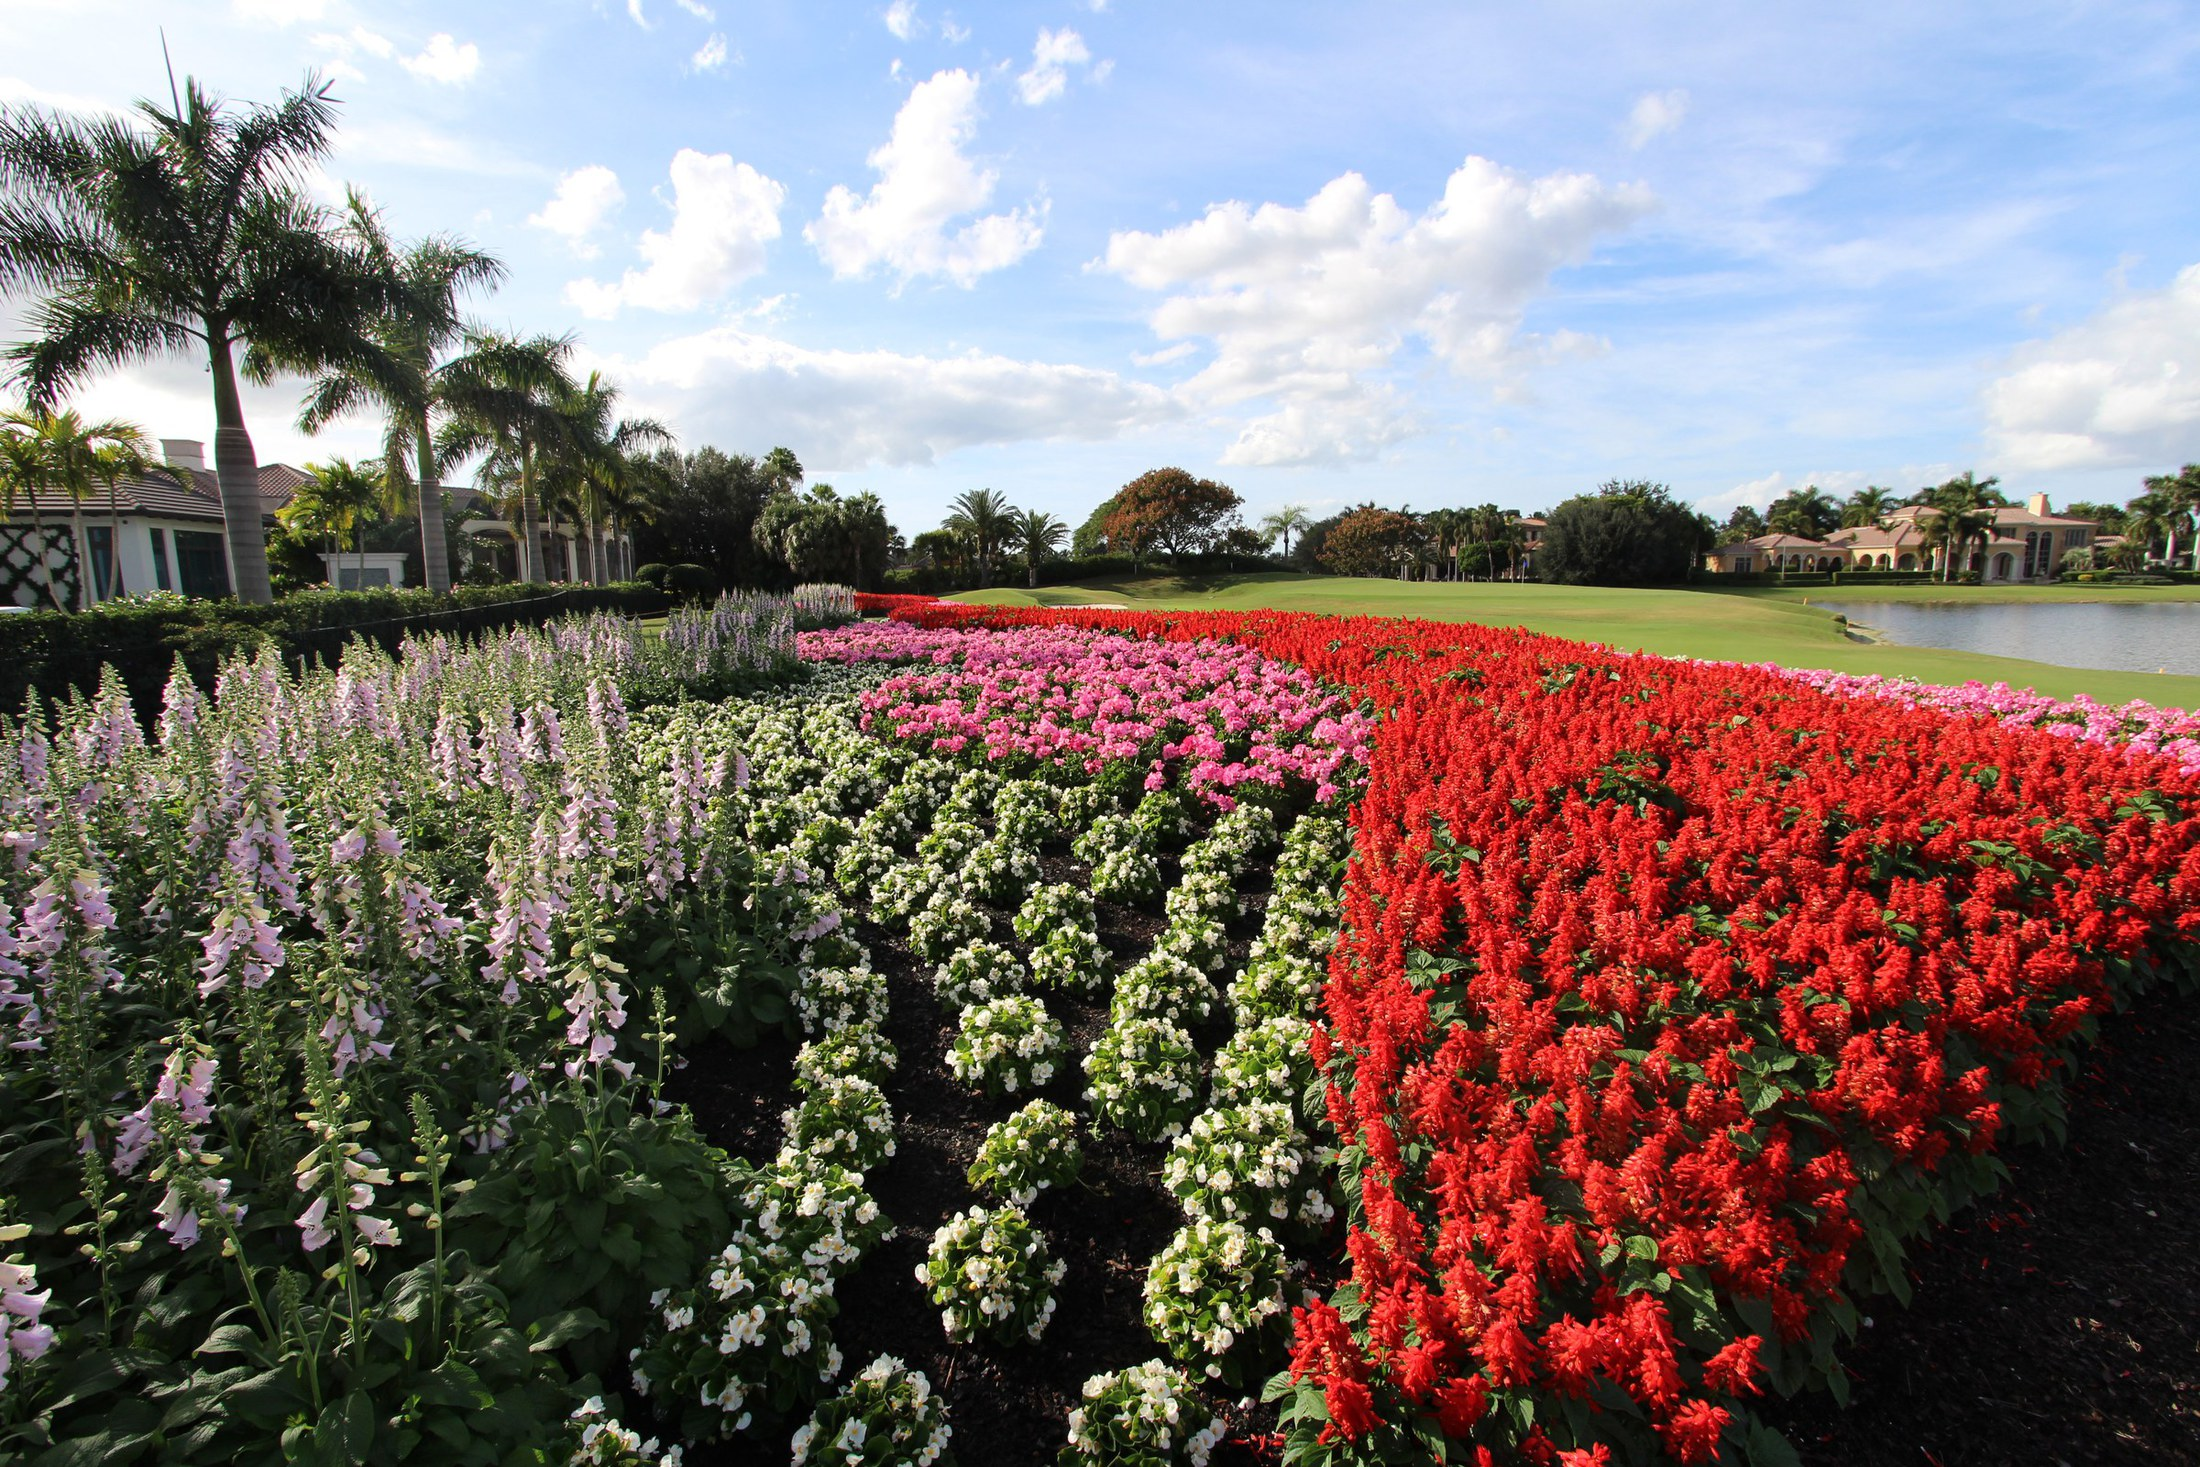 Annual flower installation club care of florida management companies all across florida allow us to recommend plants that are sure to make your property shine all year long izmirmasajfo